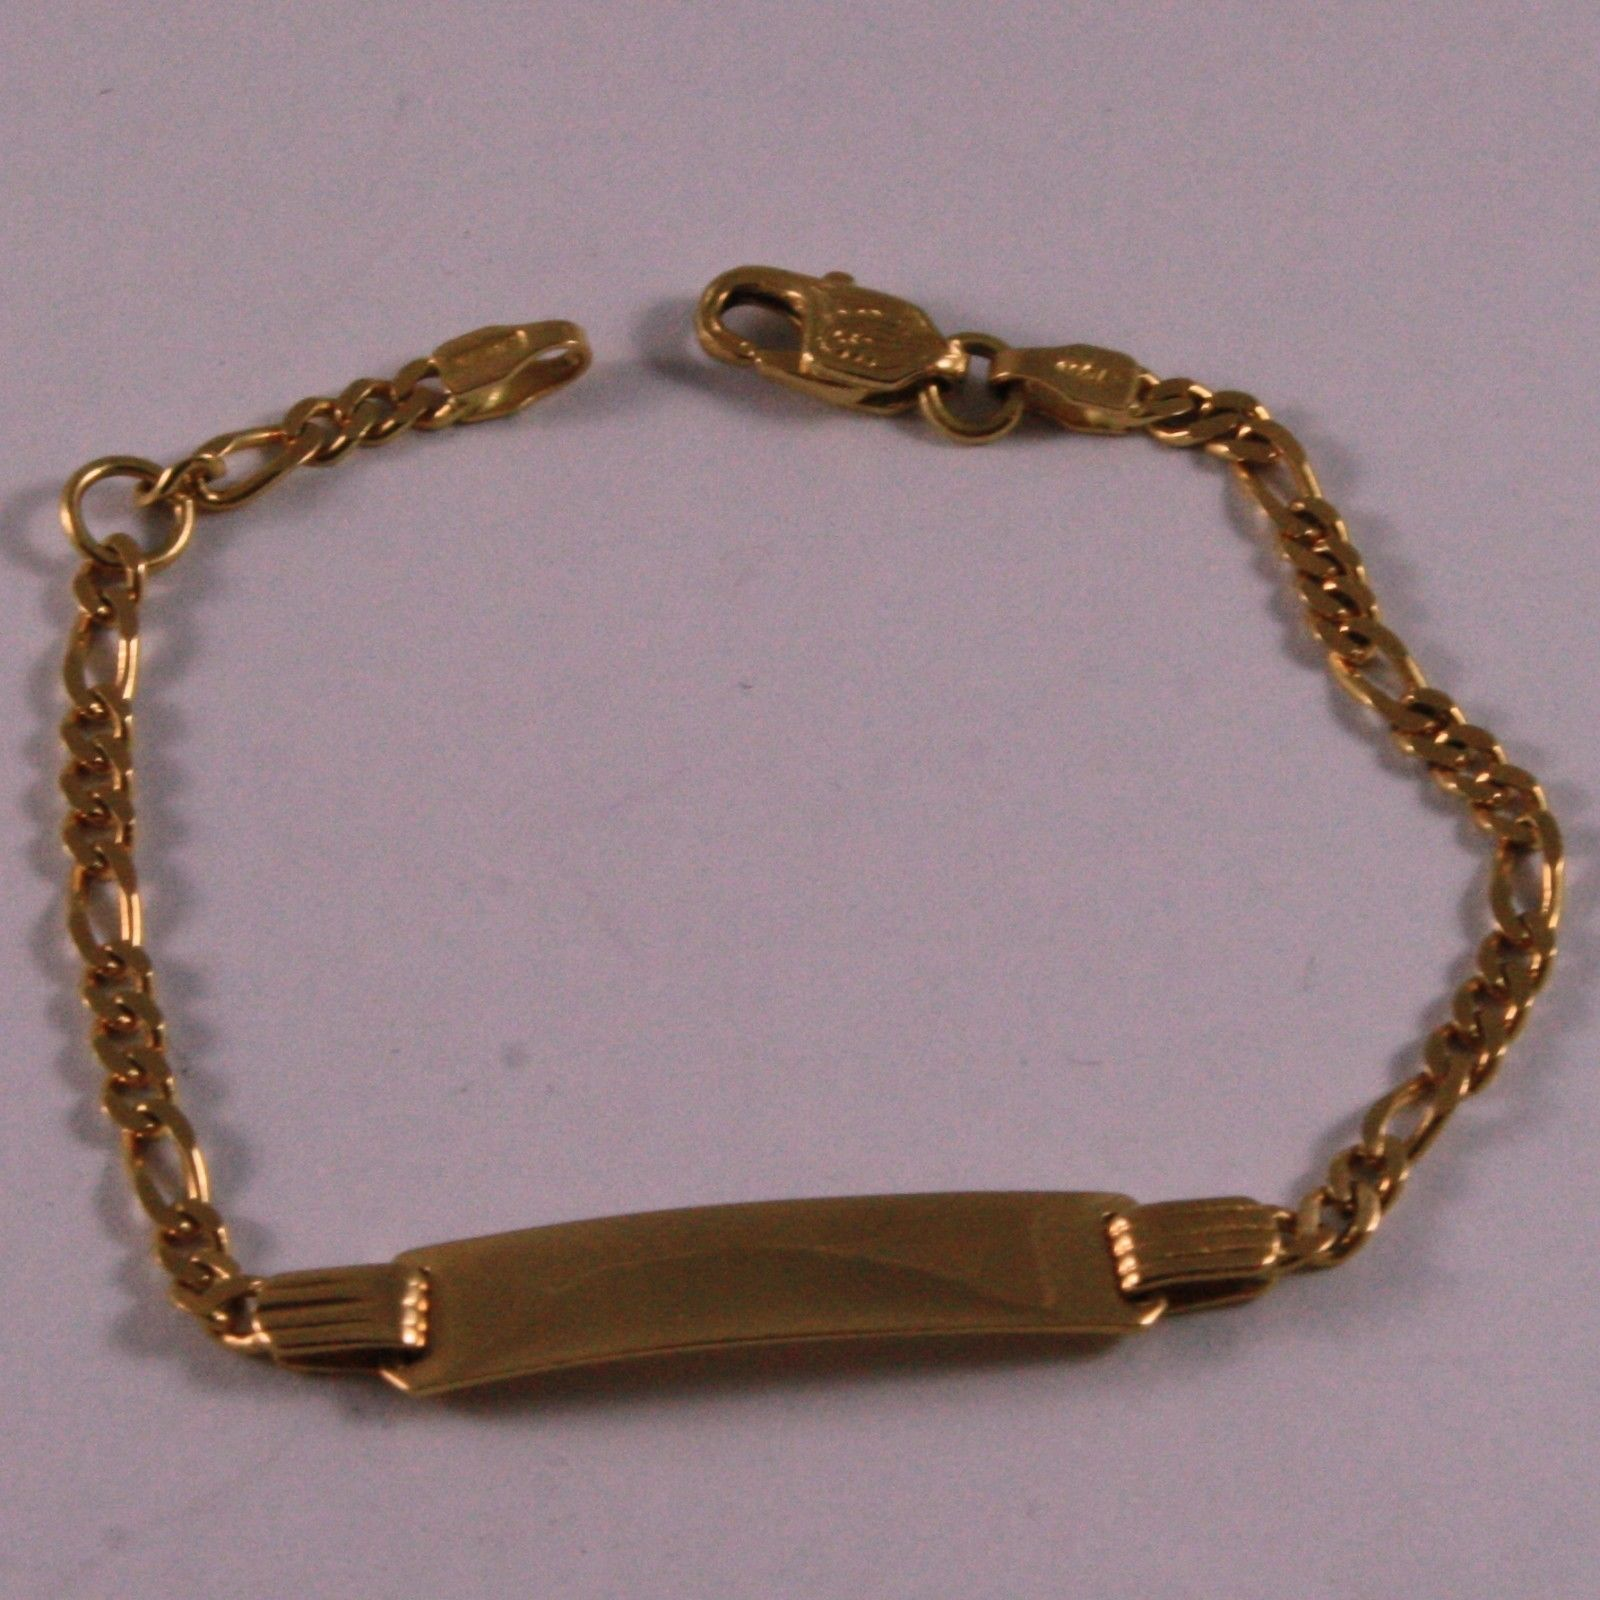 SOLID 18K YELLOW GOLD BRACELET, 5.5 INCHES, ENGRAVING PLATE, FOR CHILDREN.